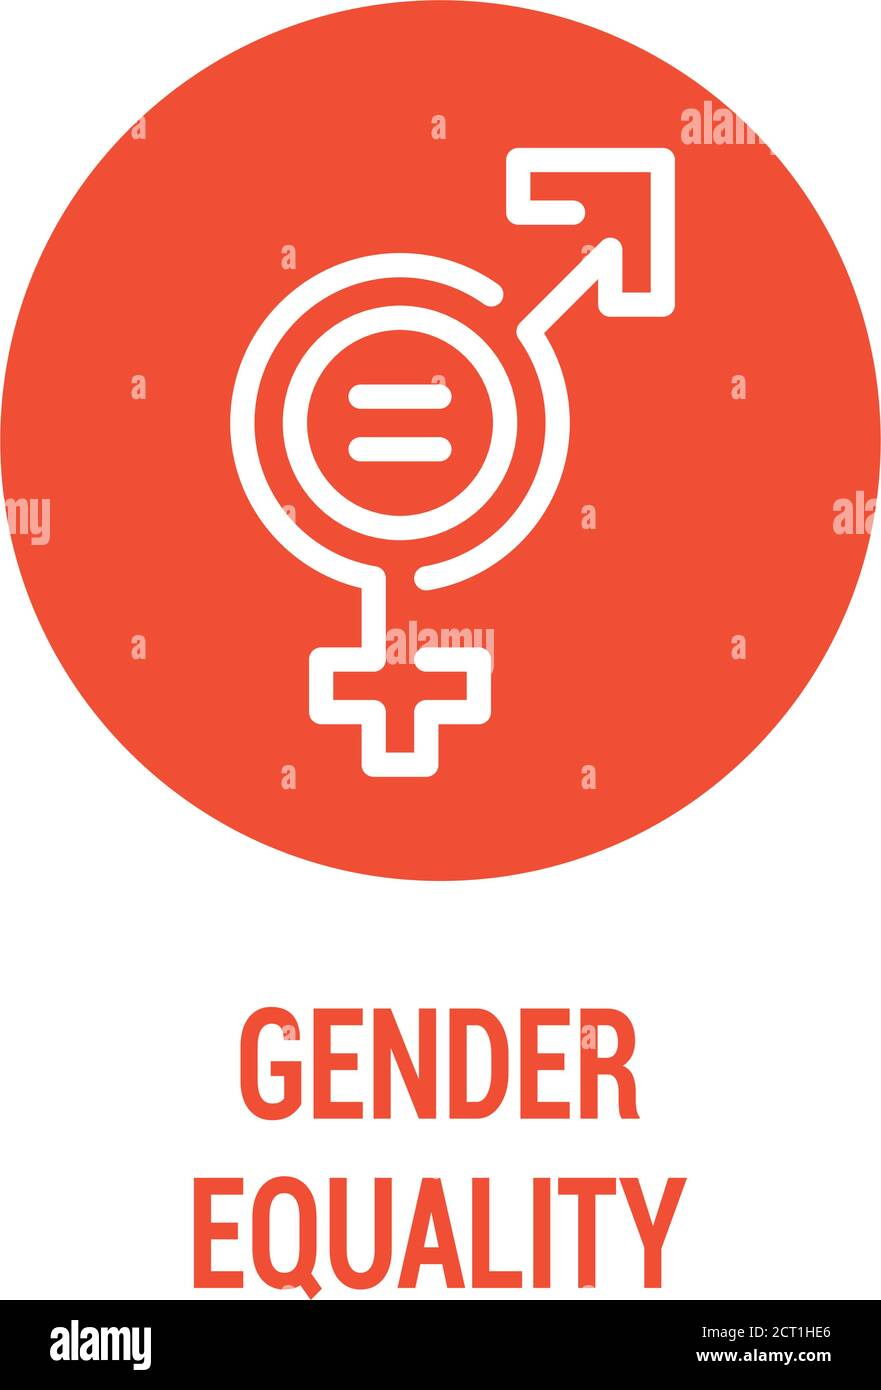 gender balance high resolution stock photography and images alamy https www alamy com gender equality color icon womens rights corporate social responsibility sustainable development goals sdg color sign pictogram for ad web image376205150 html